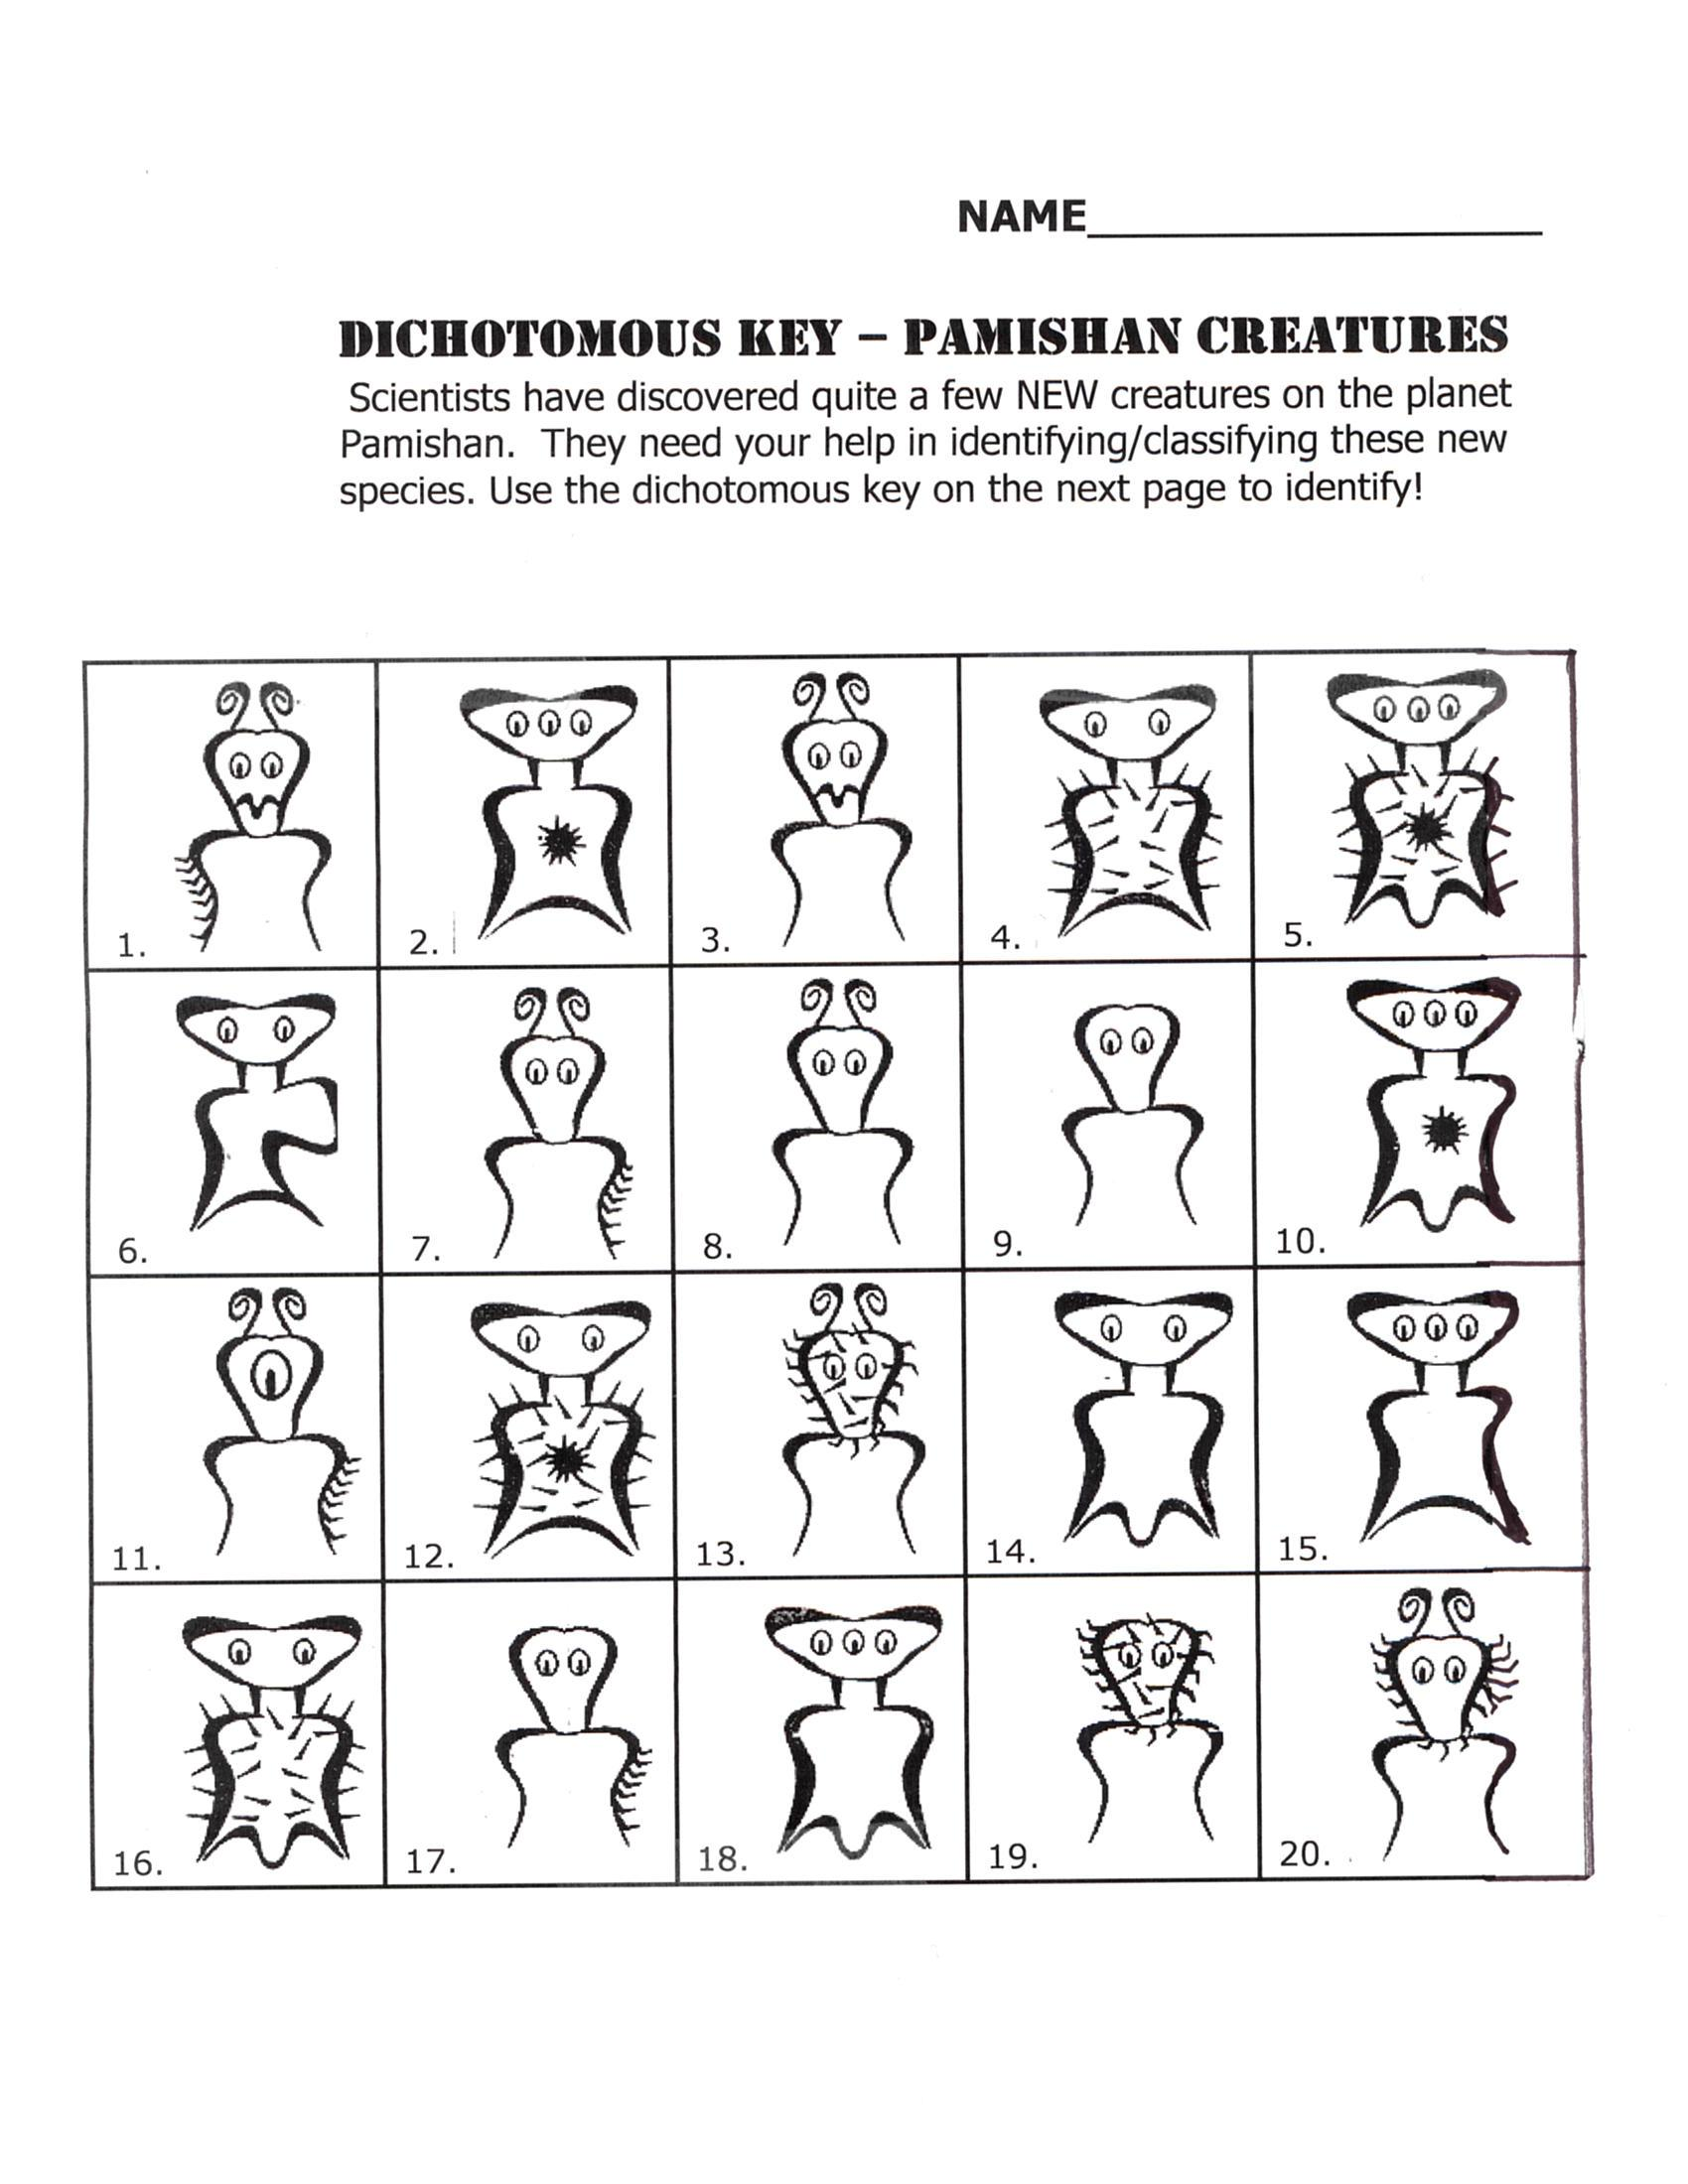 Uncategorized Dichotomous Key Worksheets behr john biology chapter 17 a key to new pamishan creatures